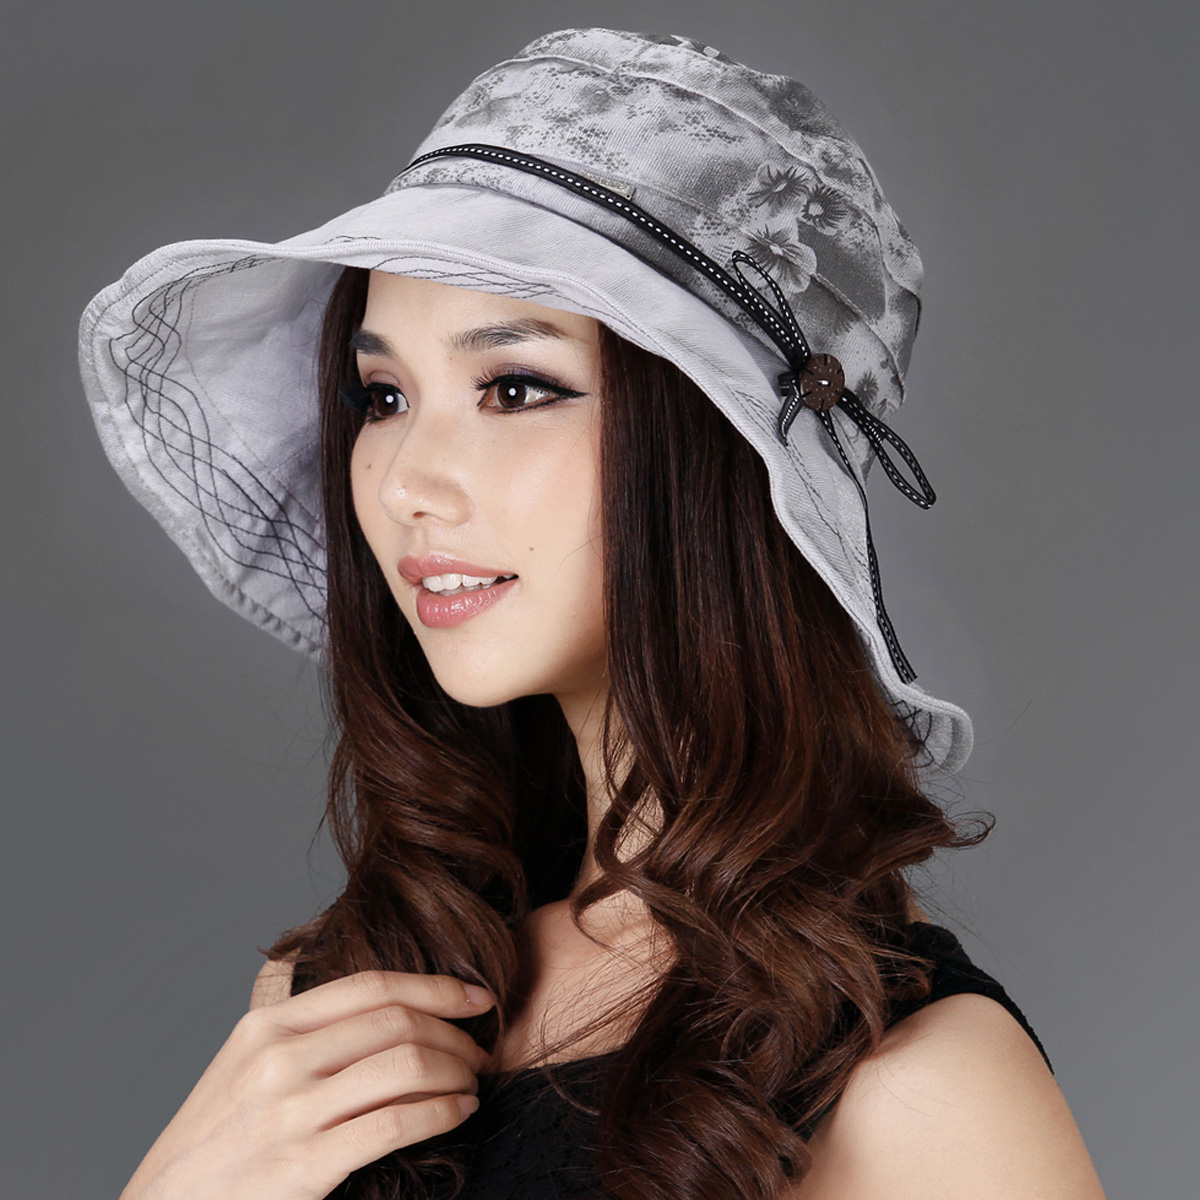 Stylish Hats – Tag Hats Stylish Cool Girl With Hat